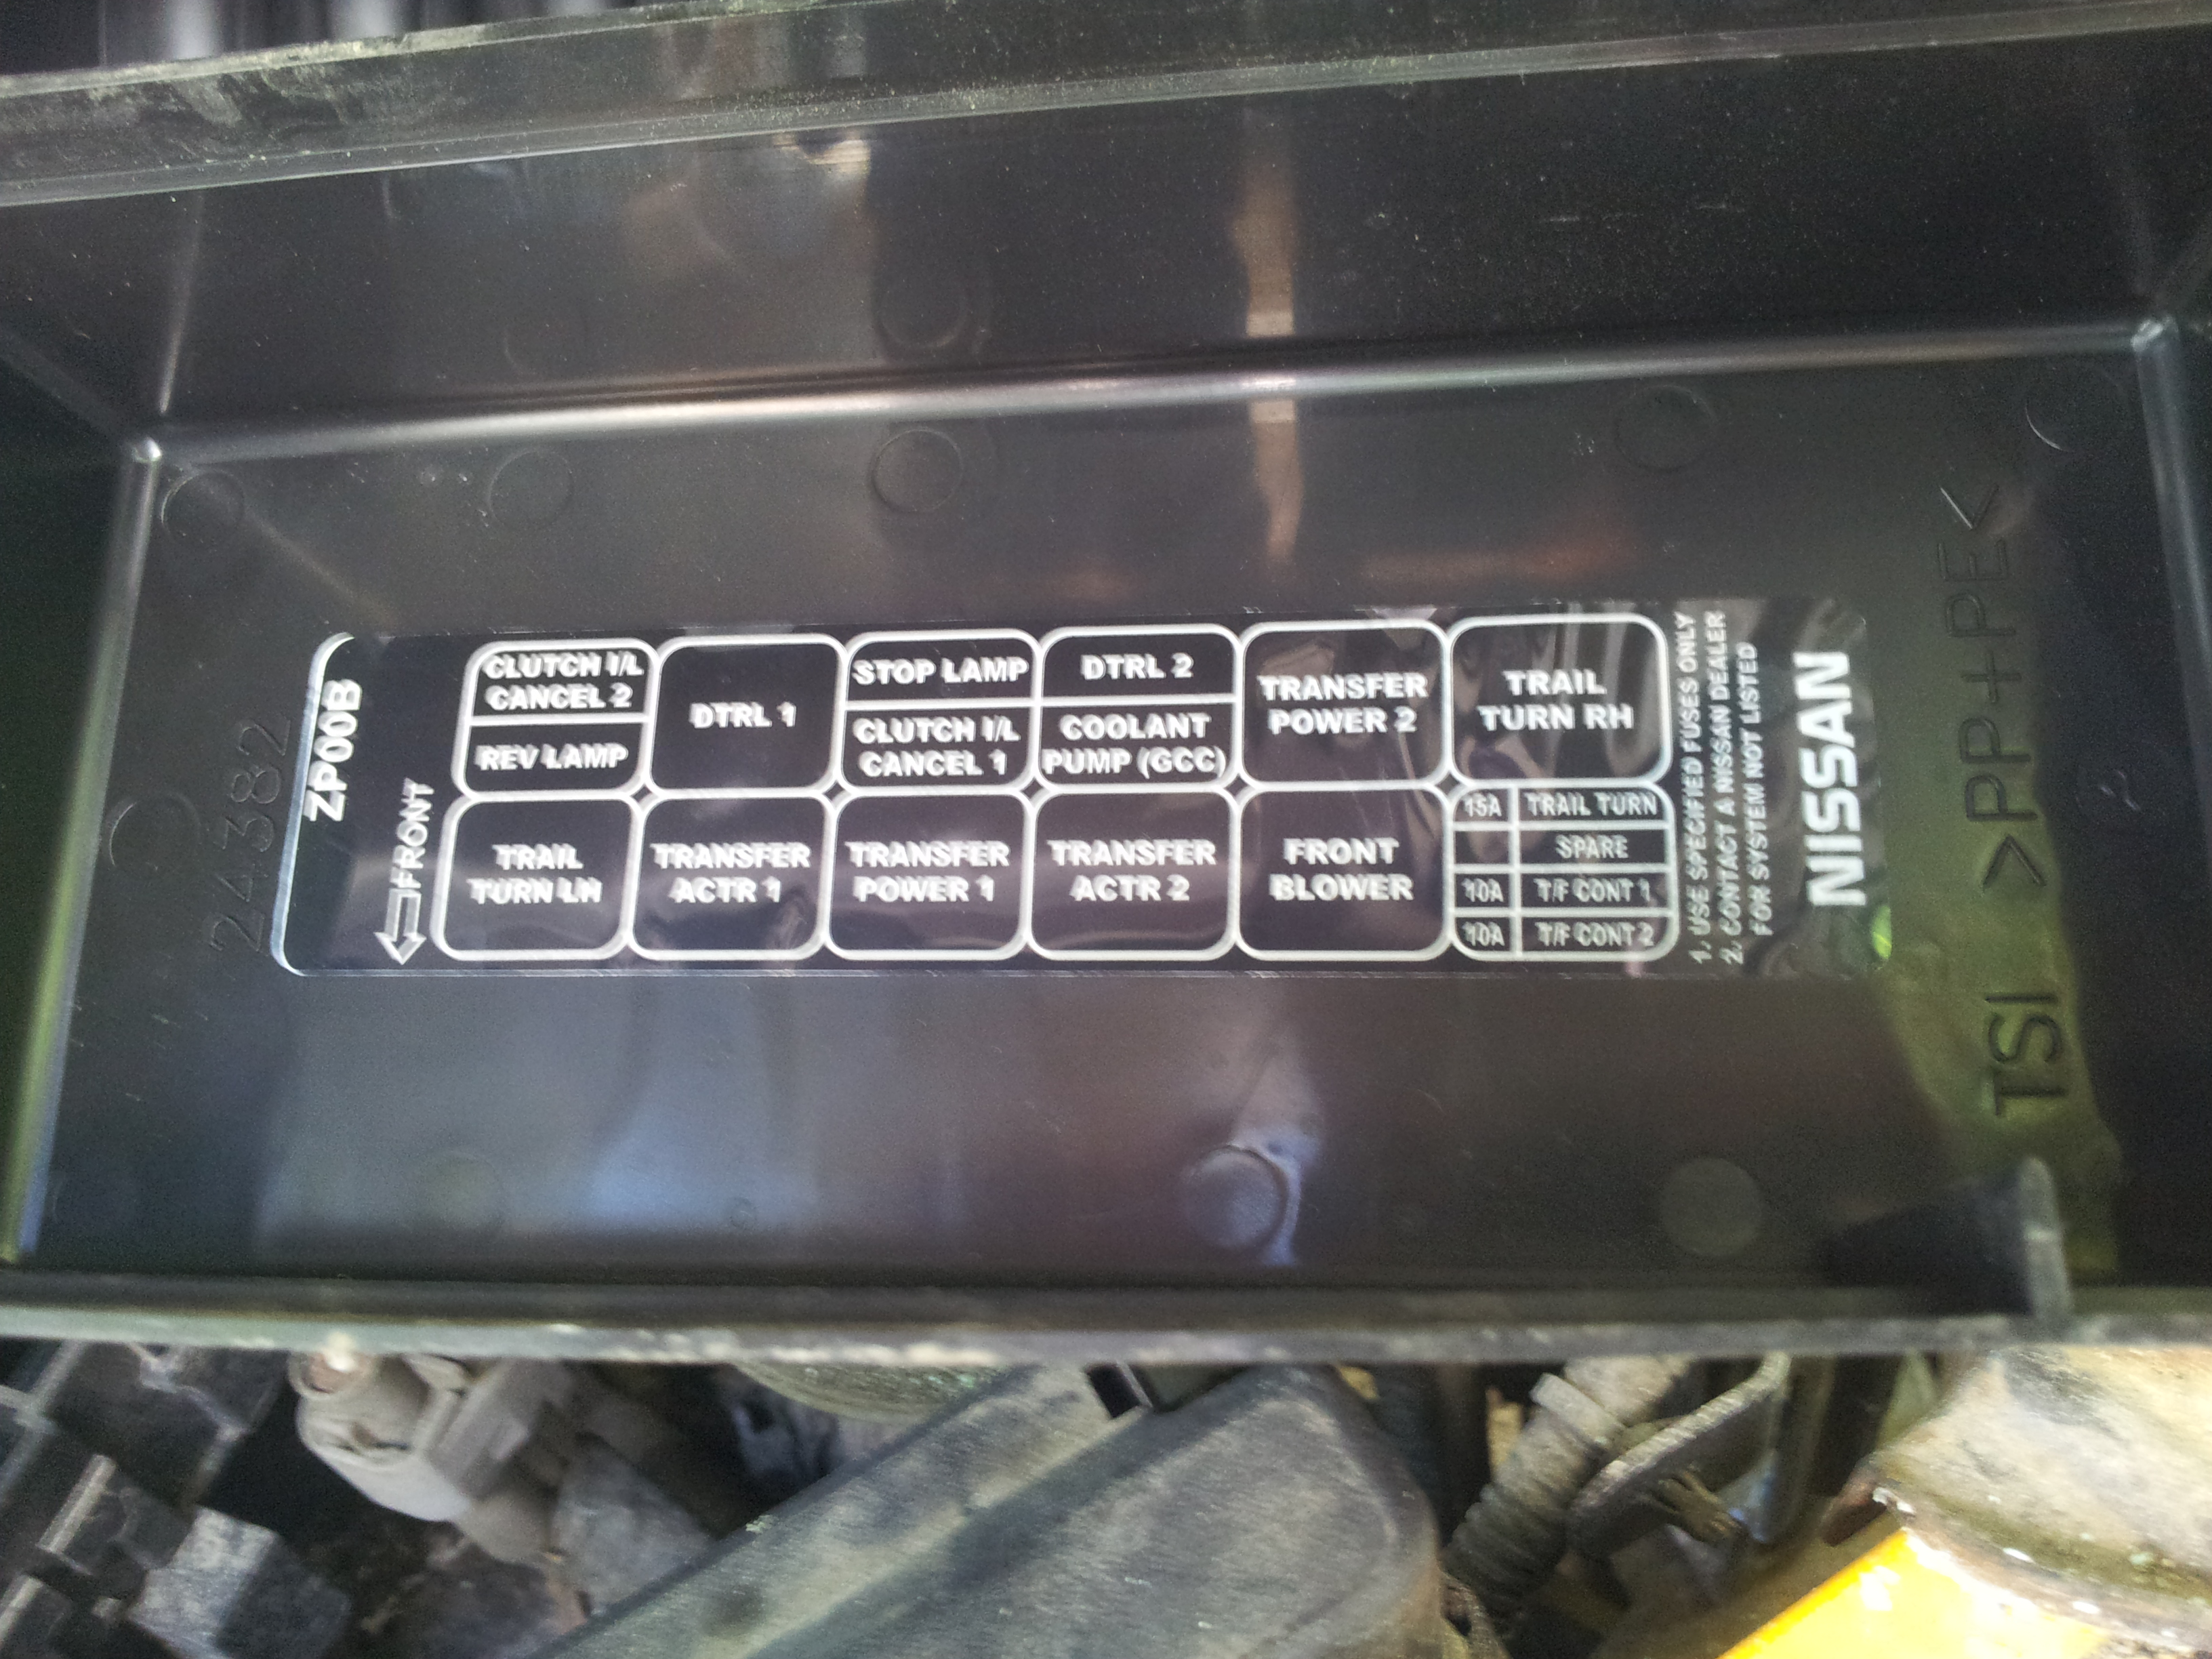 2005 Ford F 150 Radio Wiring Diagram Additionally 1991 Ford Mustang